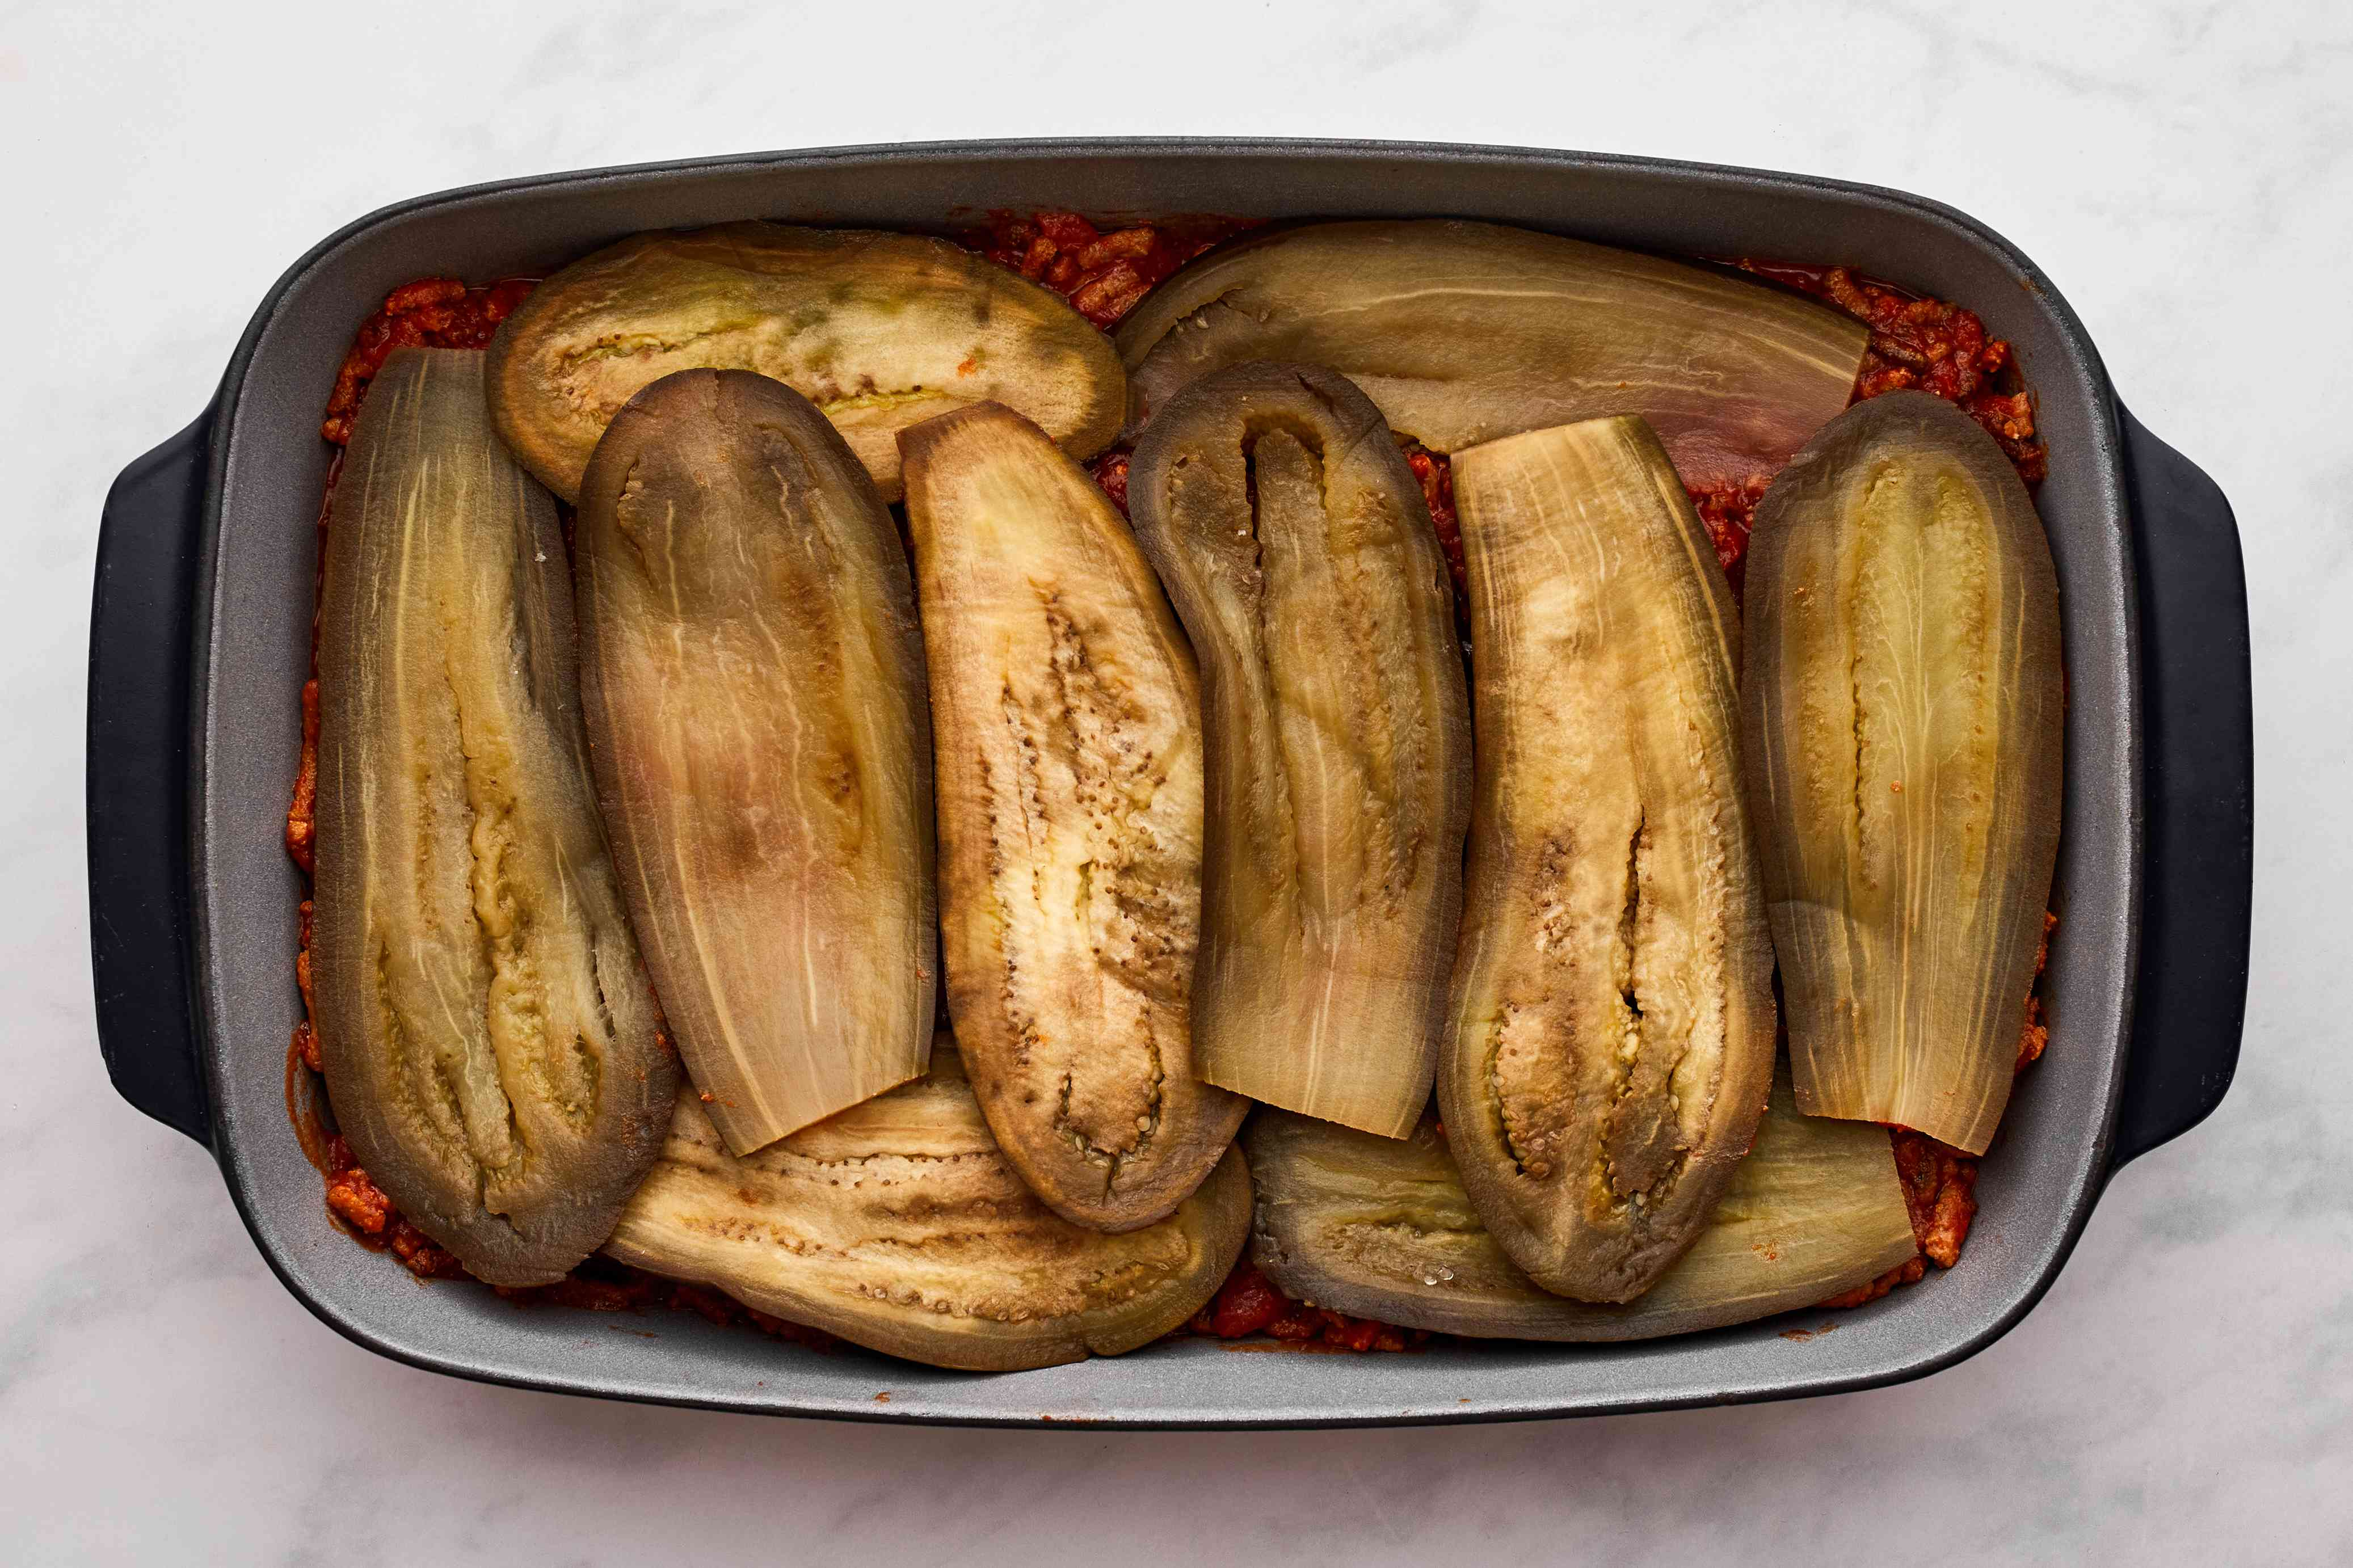 Top meat mixture with remaining eggplant slices